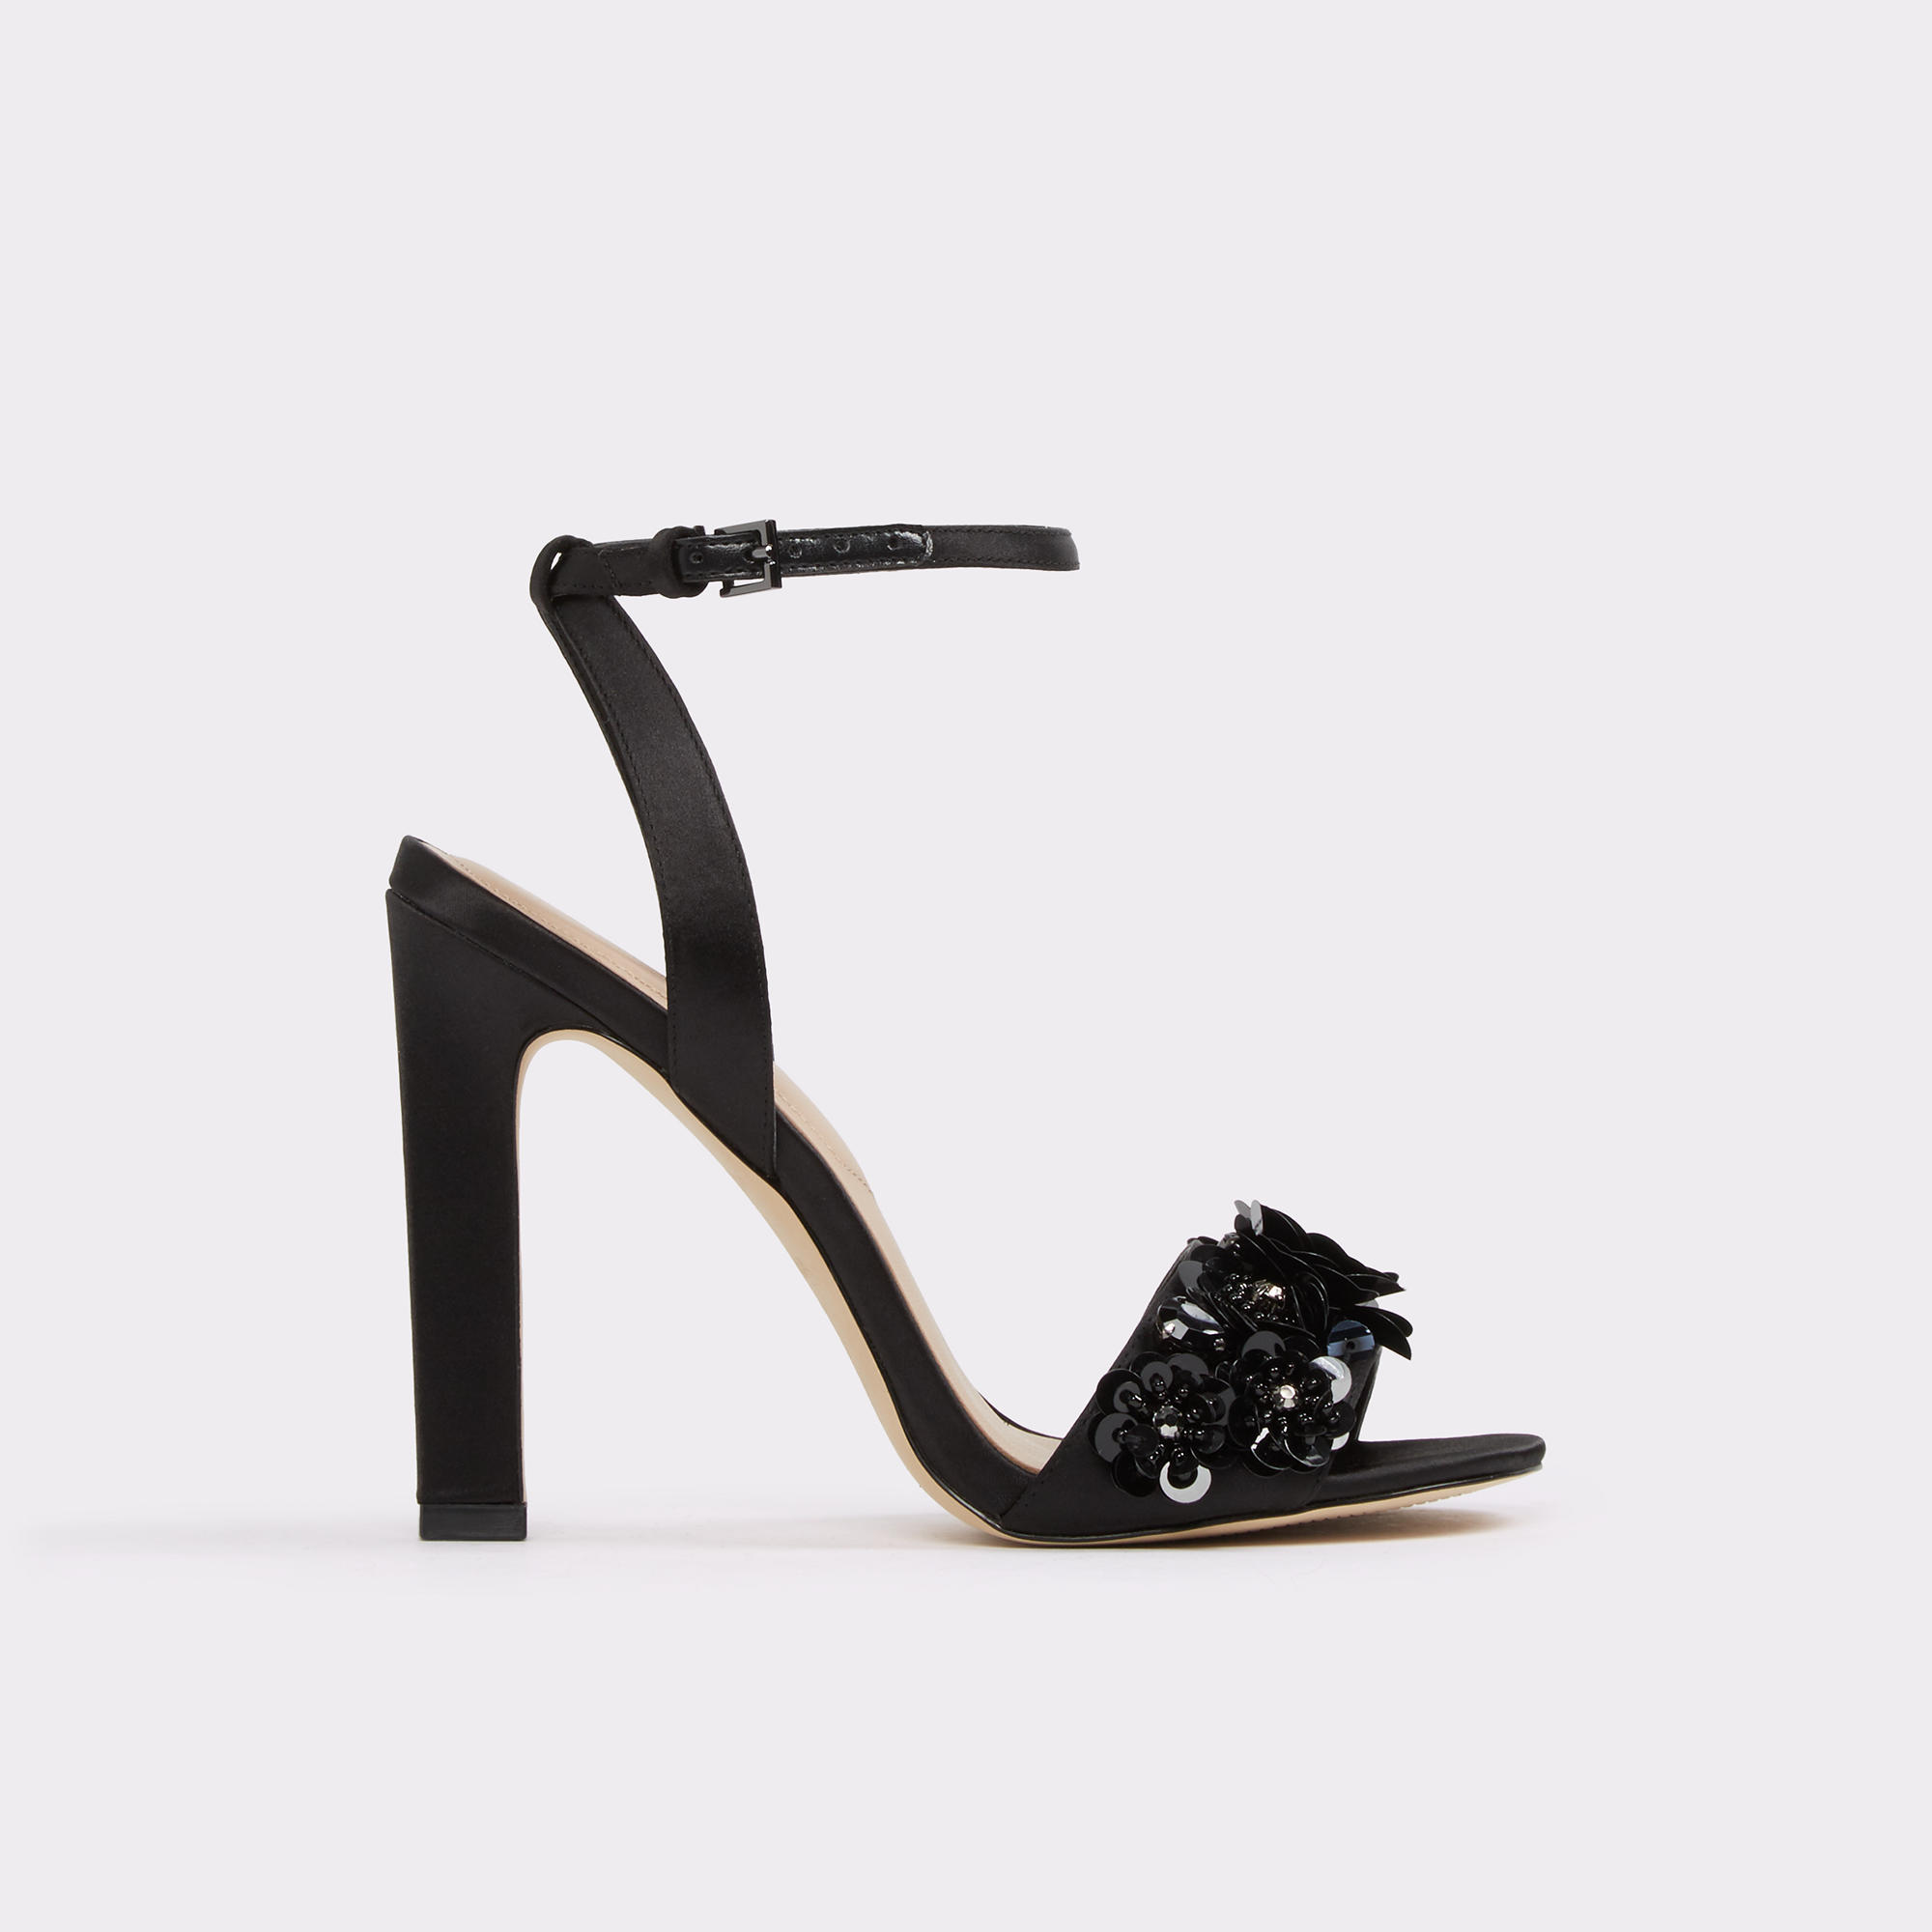 Kilia Black Satin Women's Open-toe Heels | Hermosaz